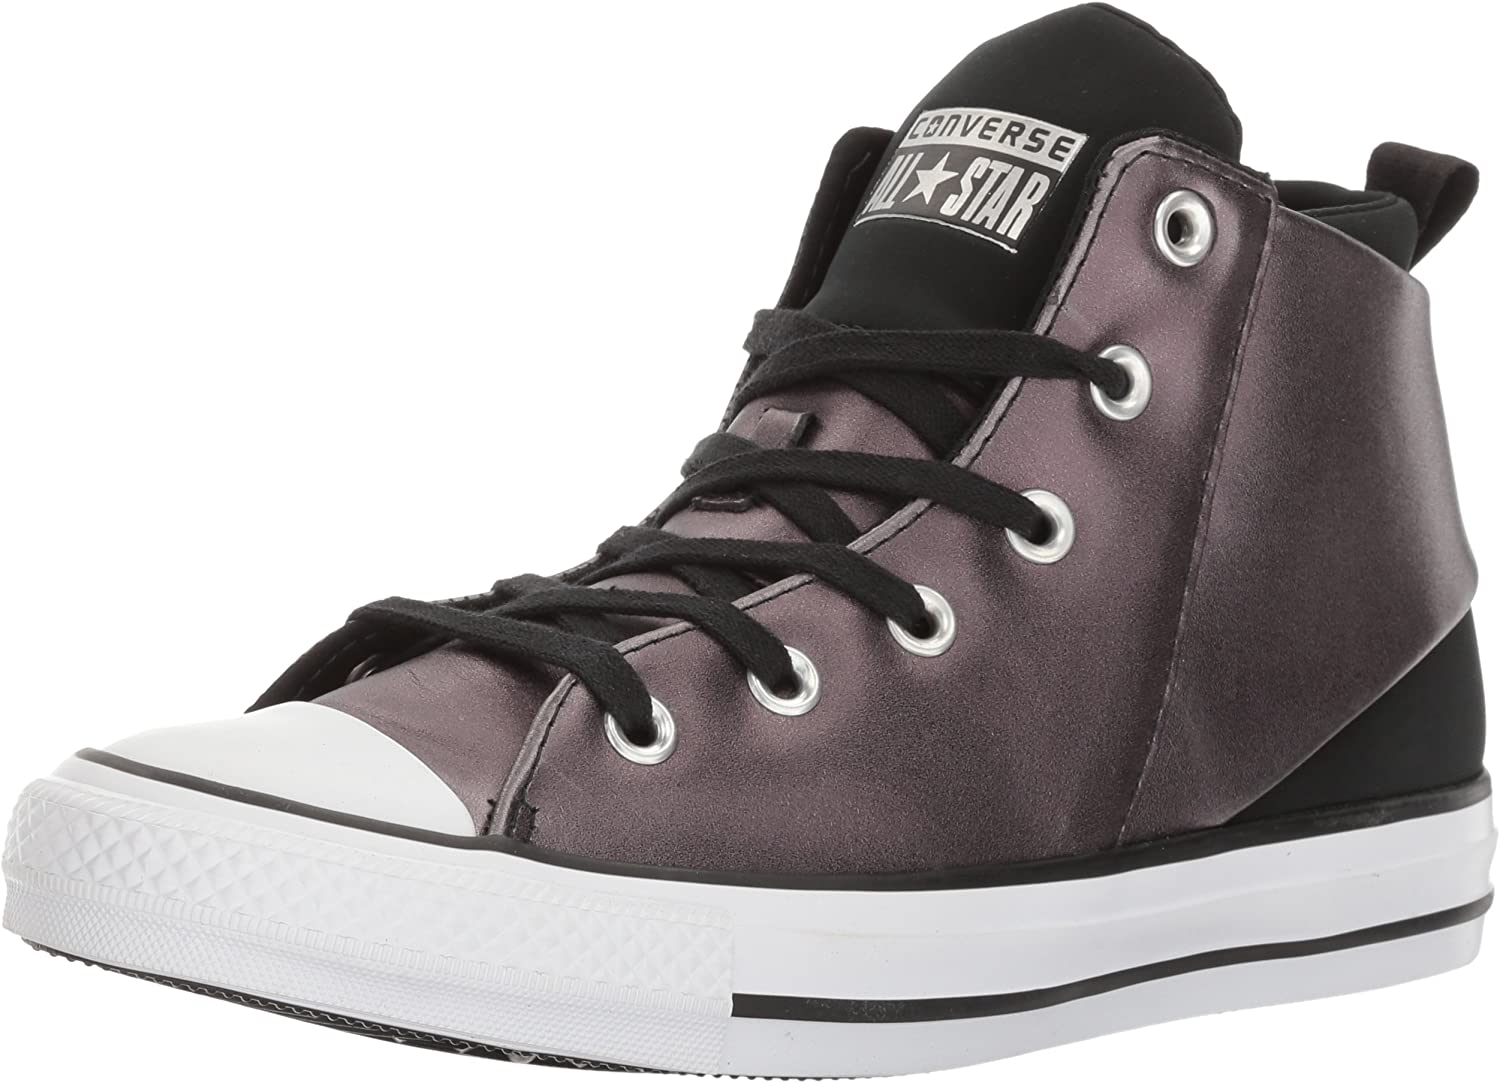 Converse Womens Chuck Taylor All Star Sloane Mid Sneaker